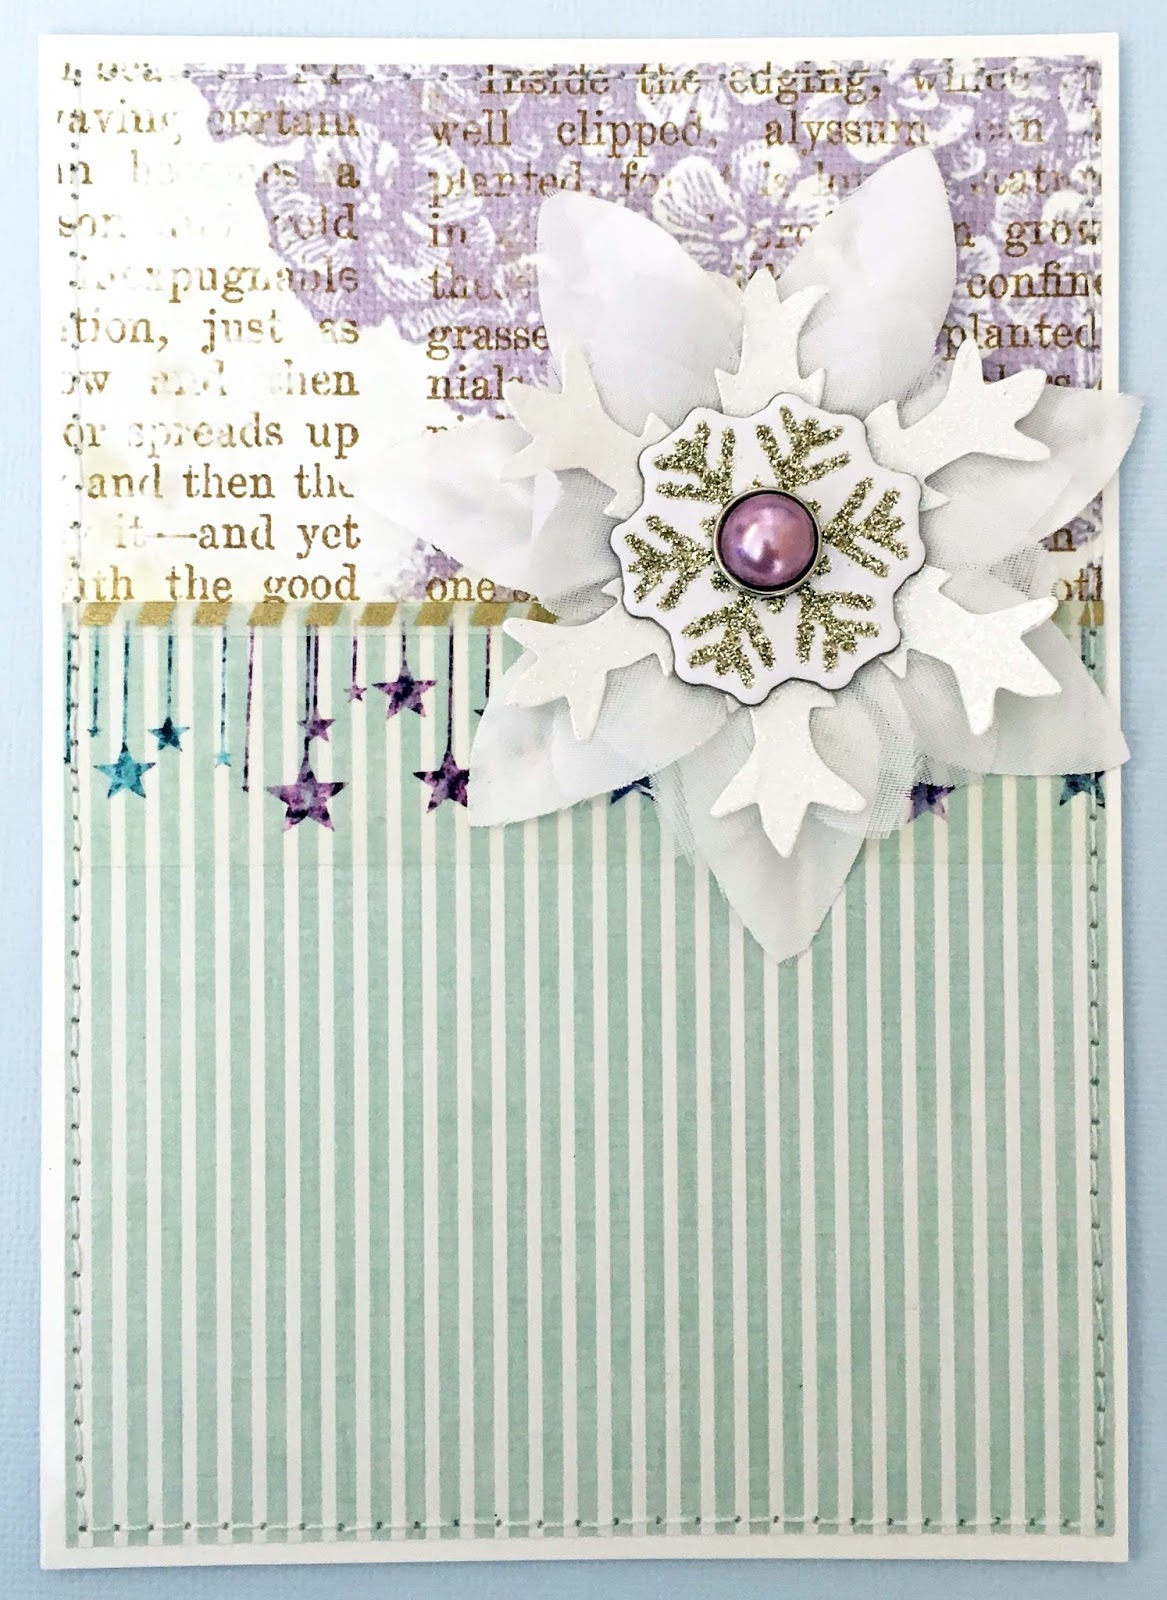 All the good blog names were taken stars andor stripes glitter paper american crafts pow pearl brad star washi and gold washi eyelet outlet poinsettia flowers michaels snowflake punch fiskars mightylinksfo